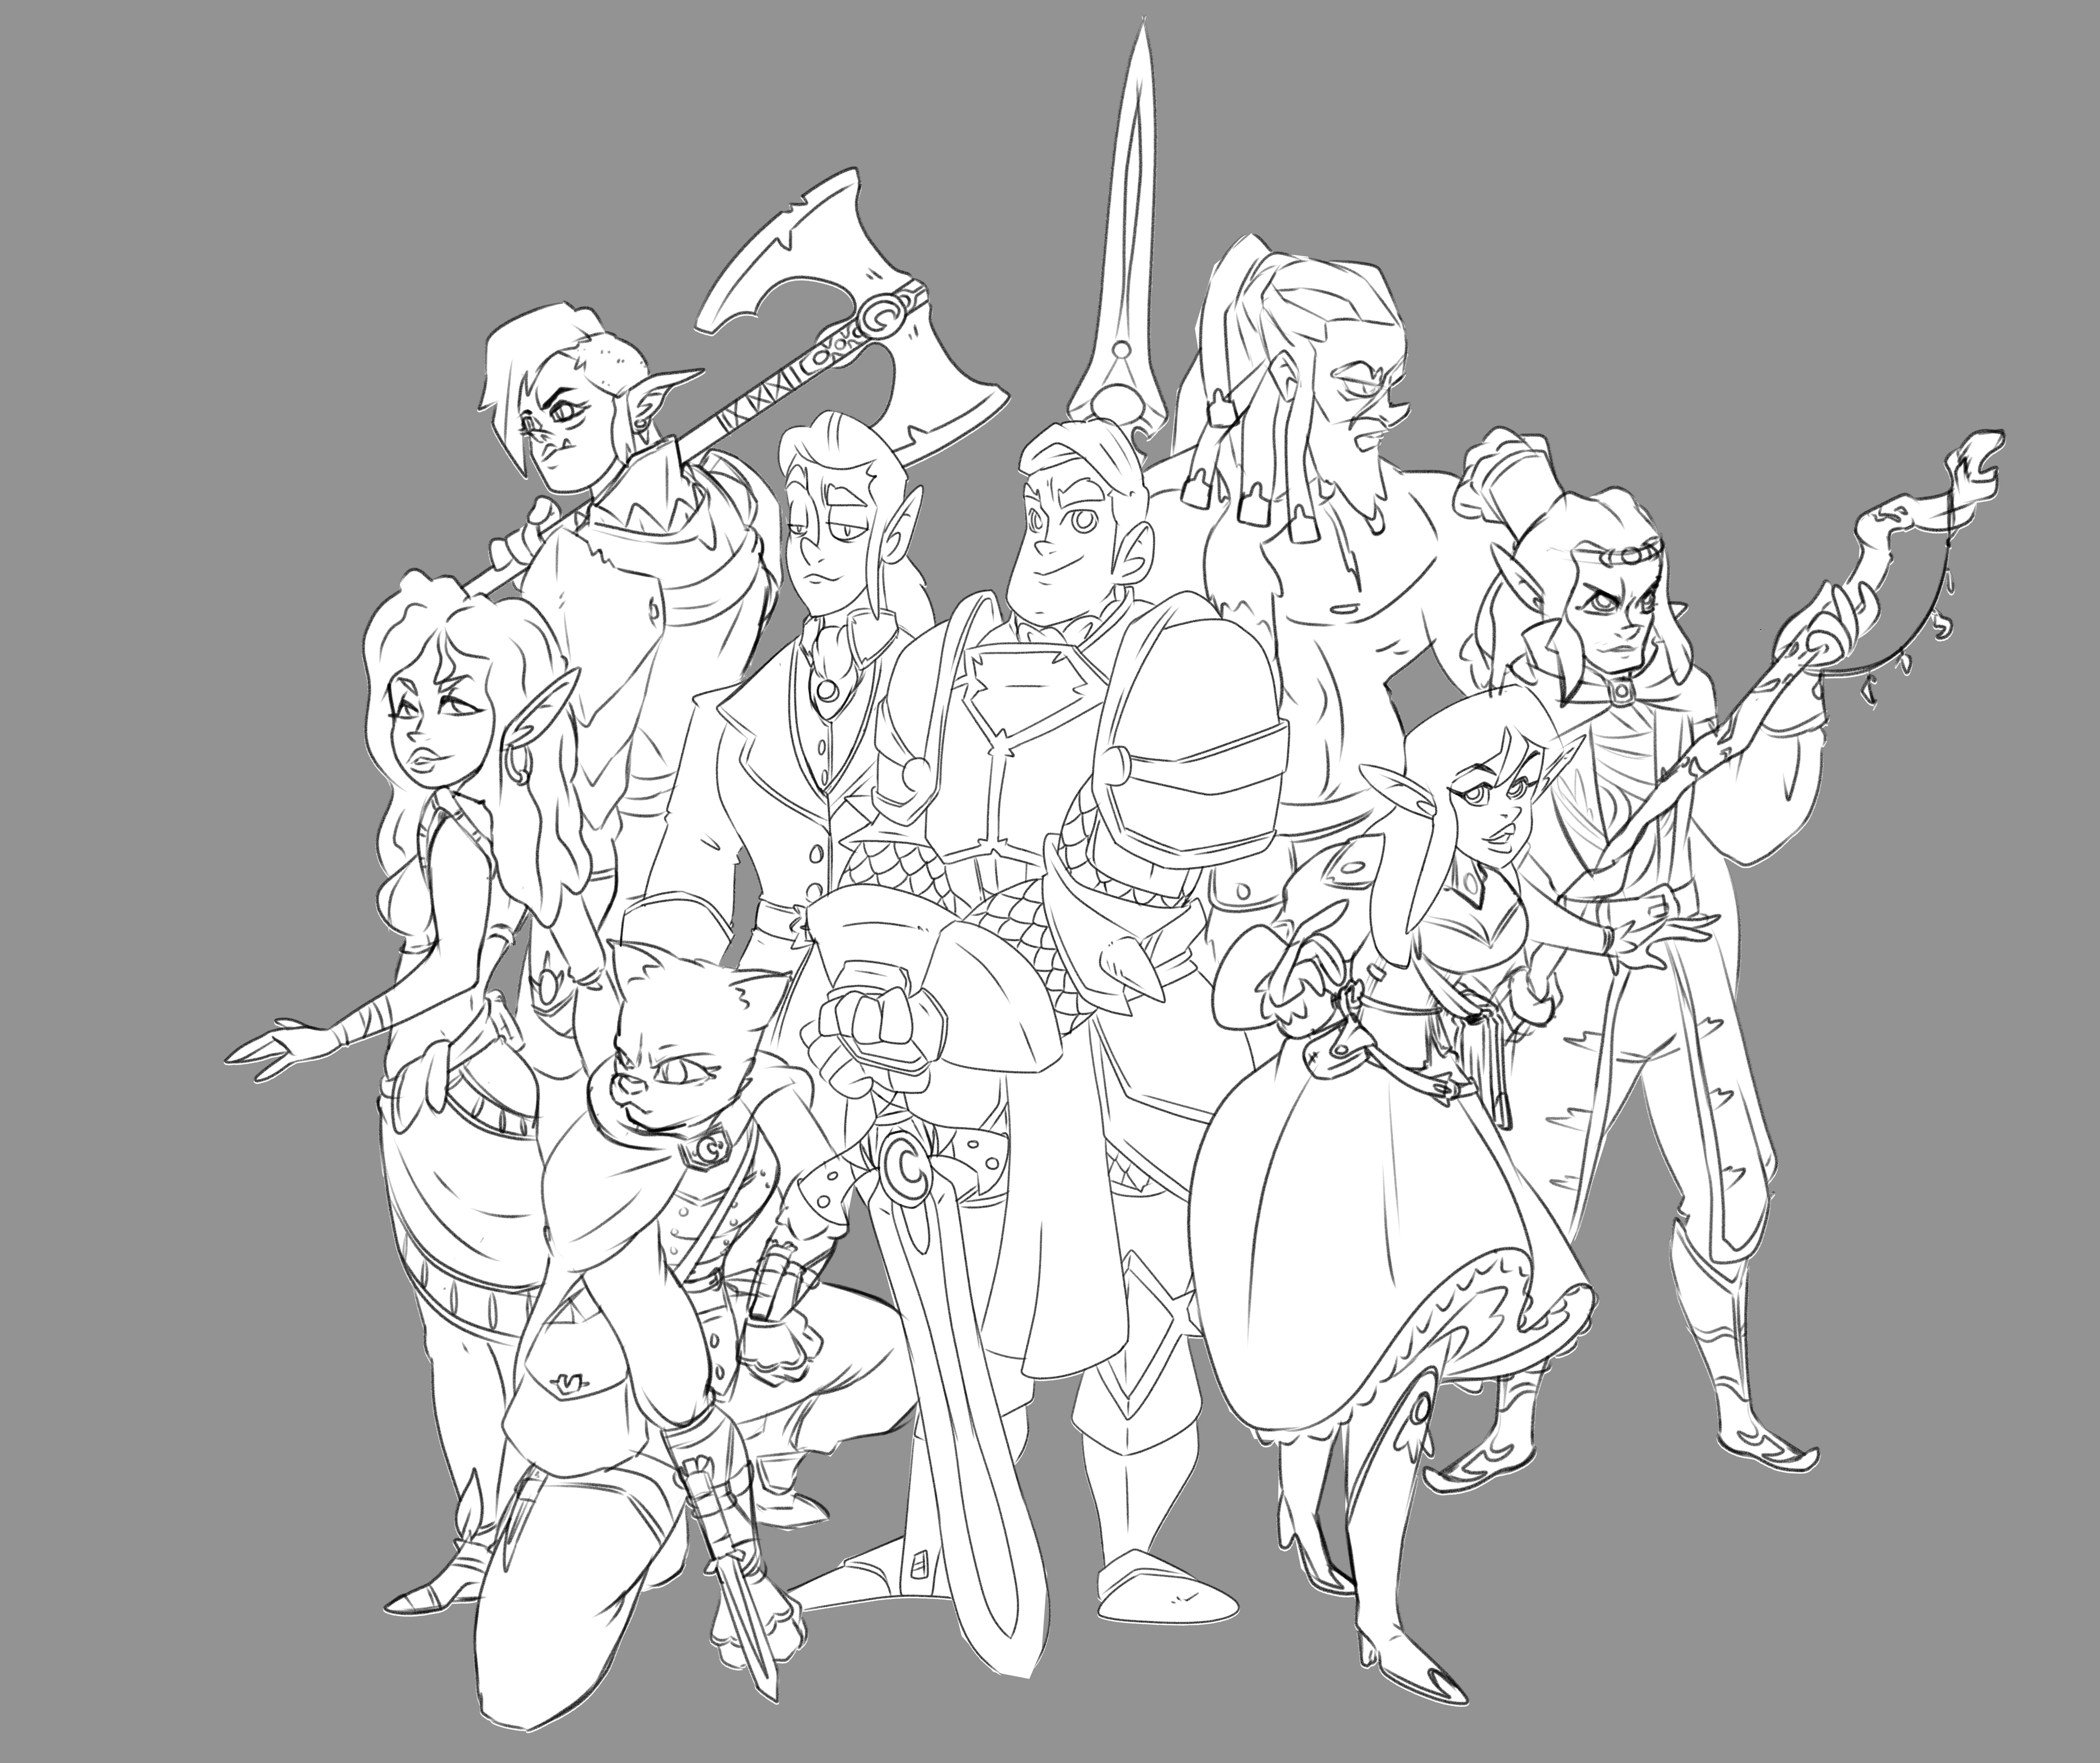 WIP: New DnD Group!